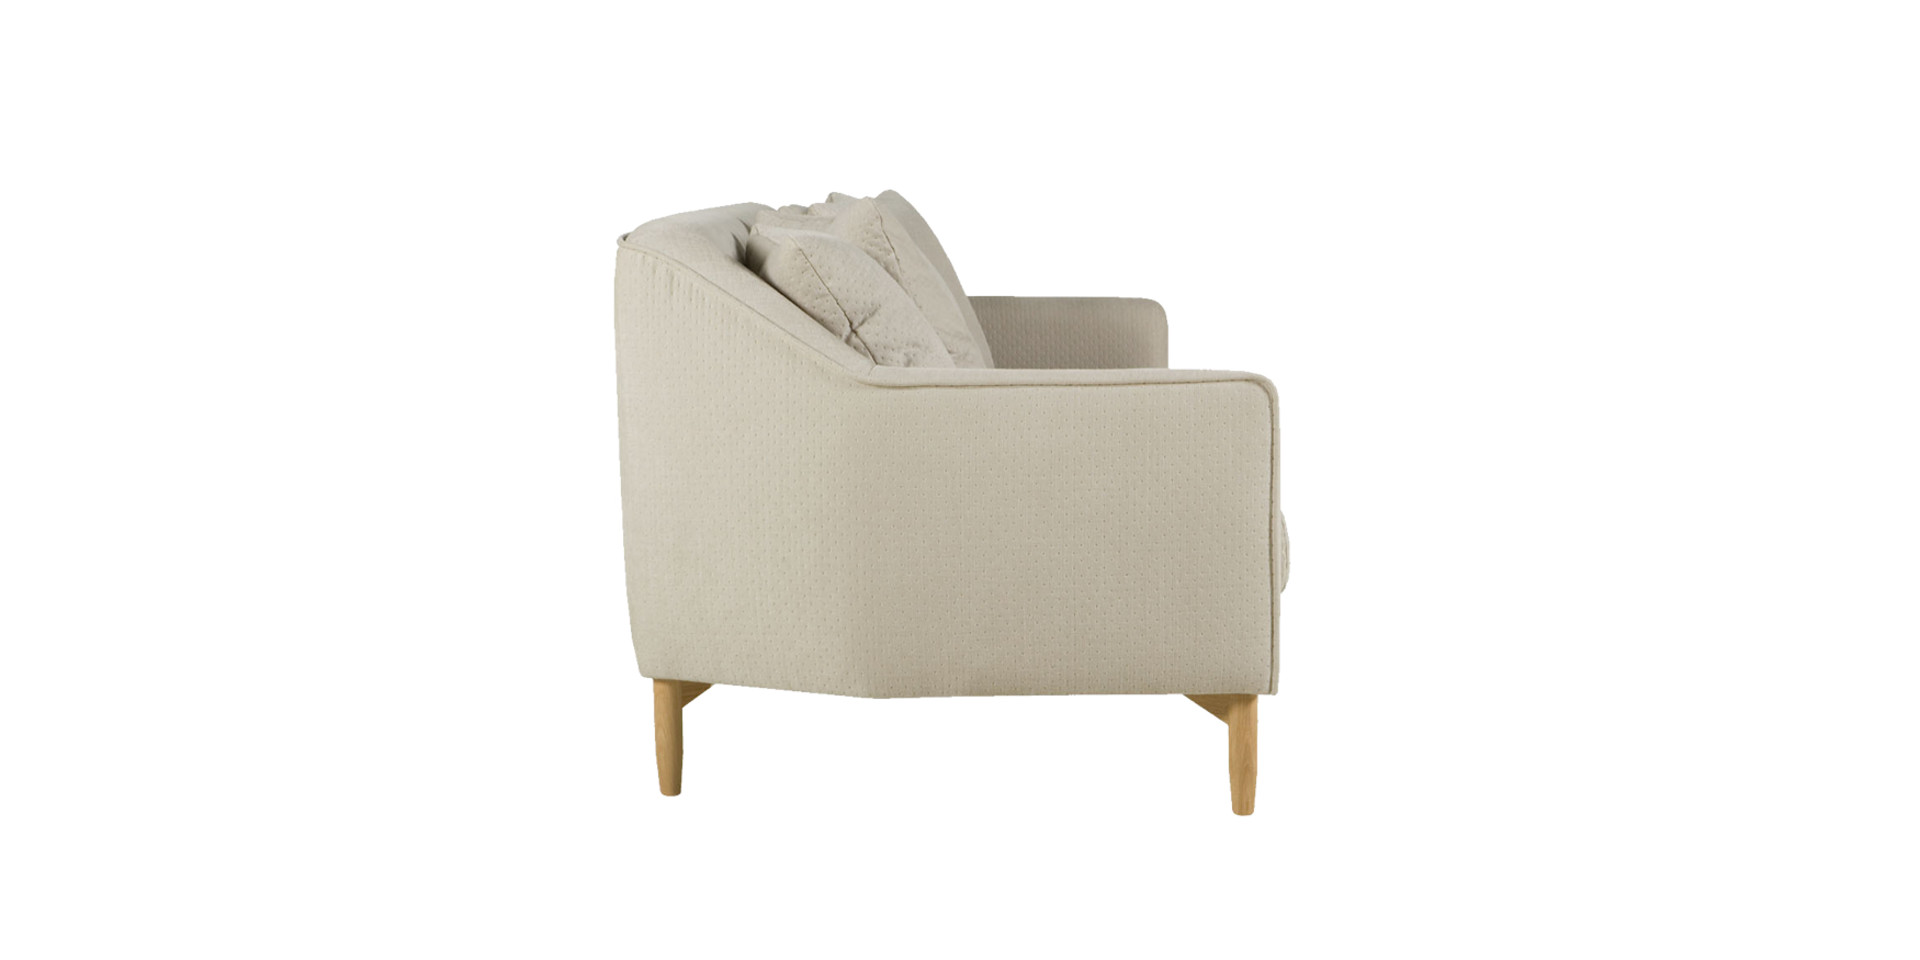 sits-ivy-canape-3seater_caleido3790_light_beige_perforated_3